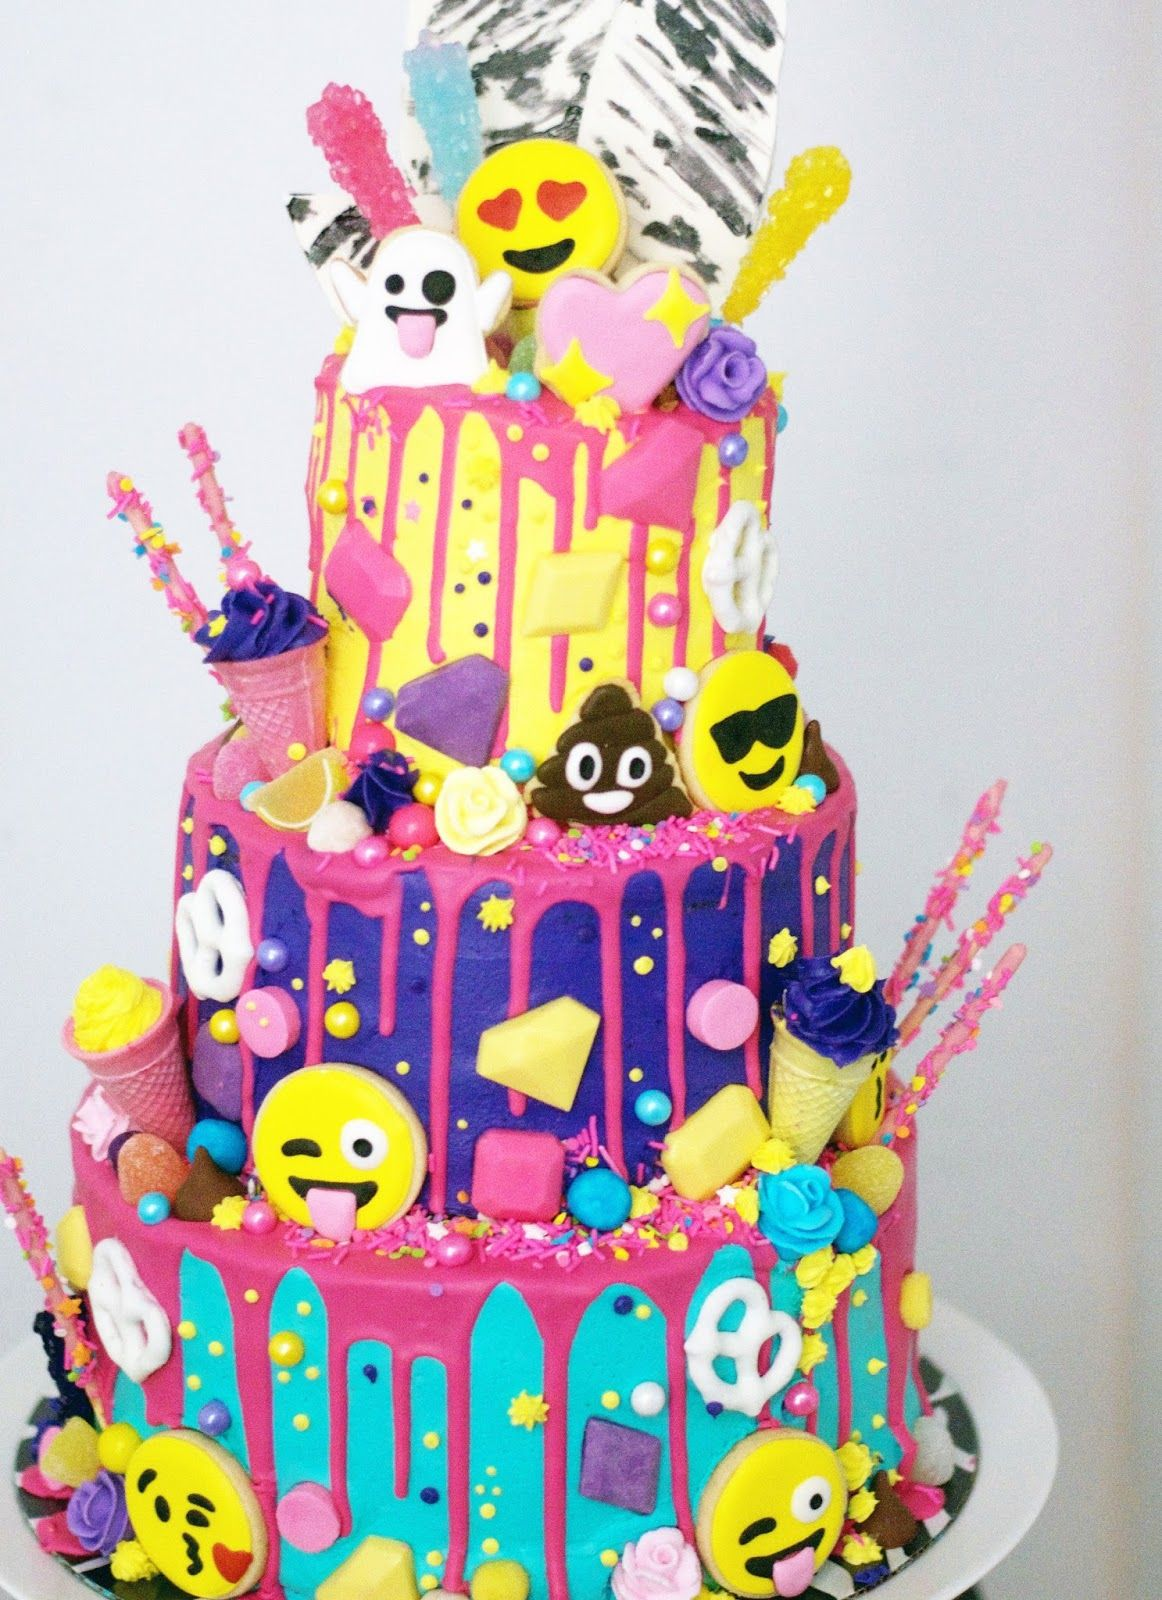 This Might Be My Favorite Build A Cake To Date The Incredible Lynzie At Love By Lynzie Asked Me To Make This Three Emoji Birthday Cake Emoji Cake Party Cakes